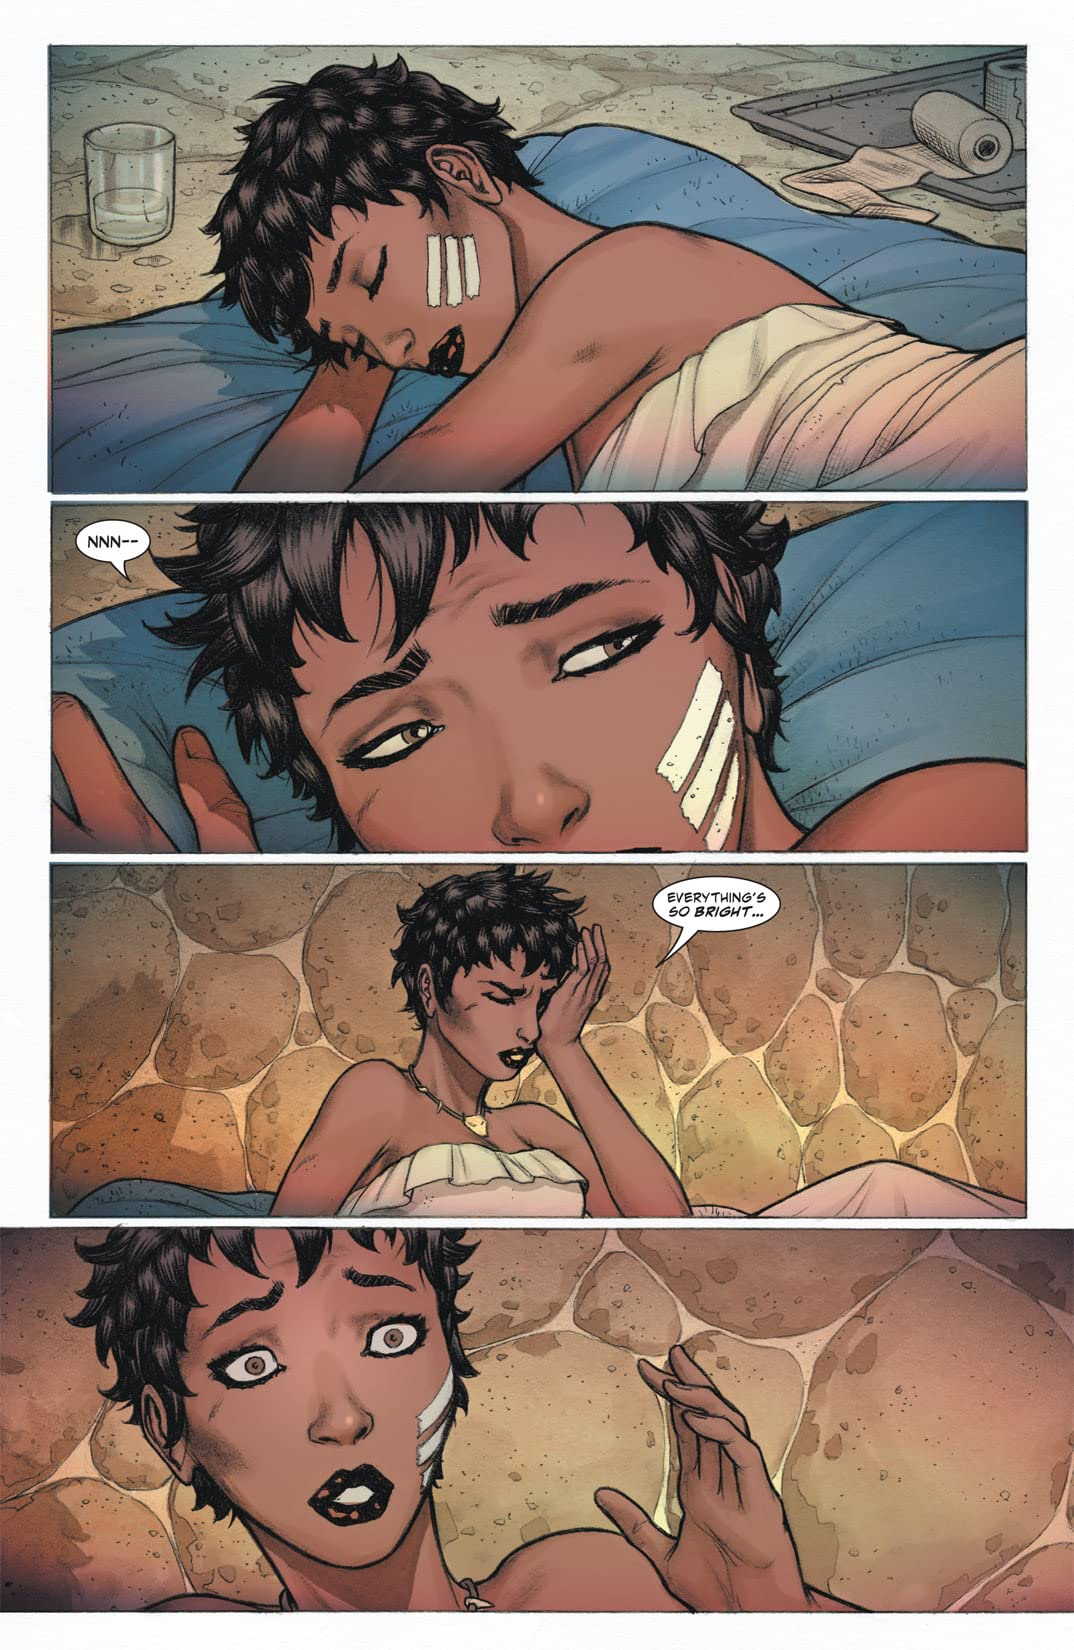 Vixen: Return of the Lion #3 (of 5)